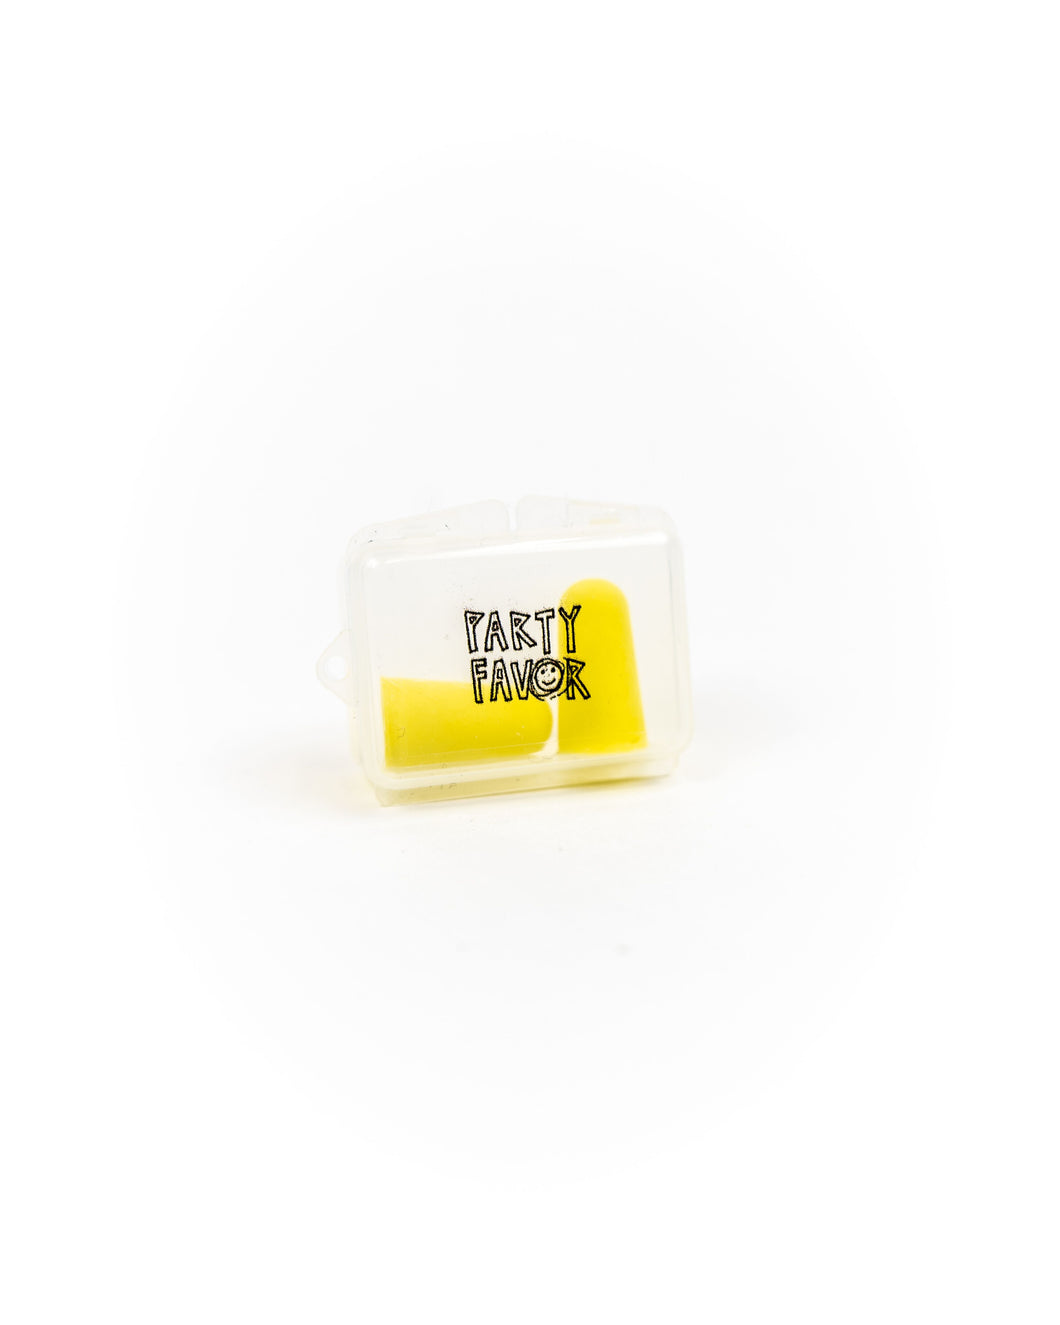 PARTY FAVOR EARPLUGS